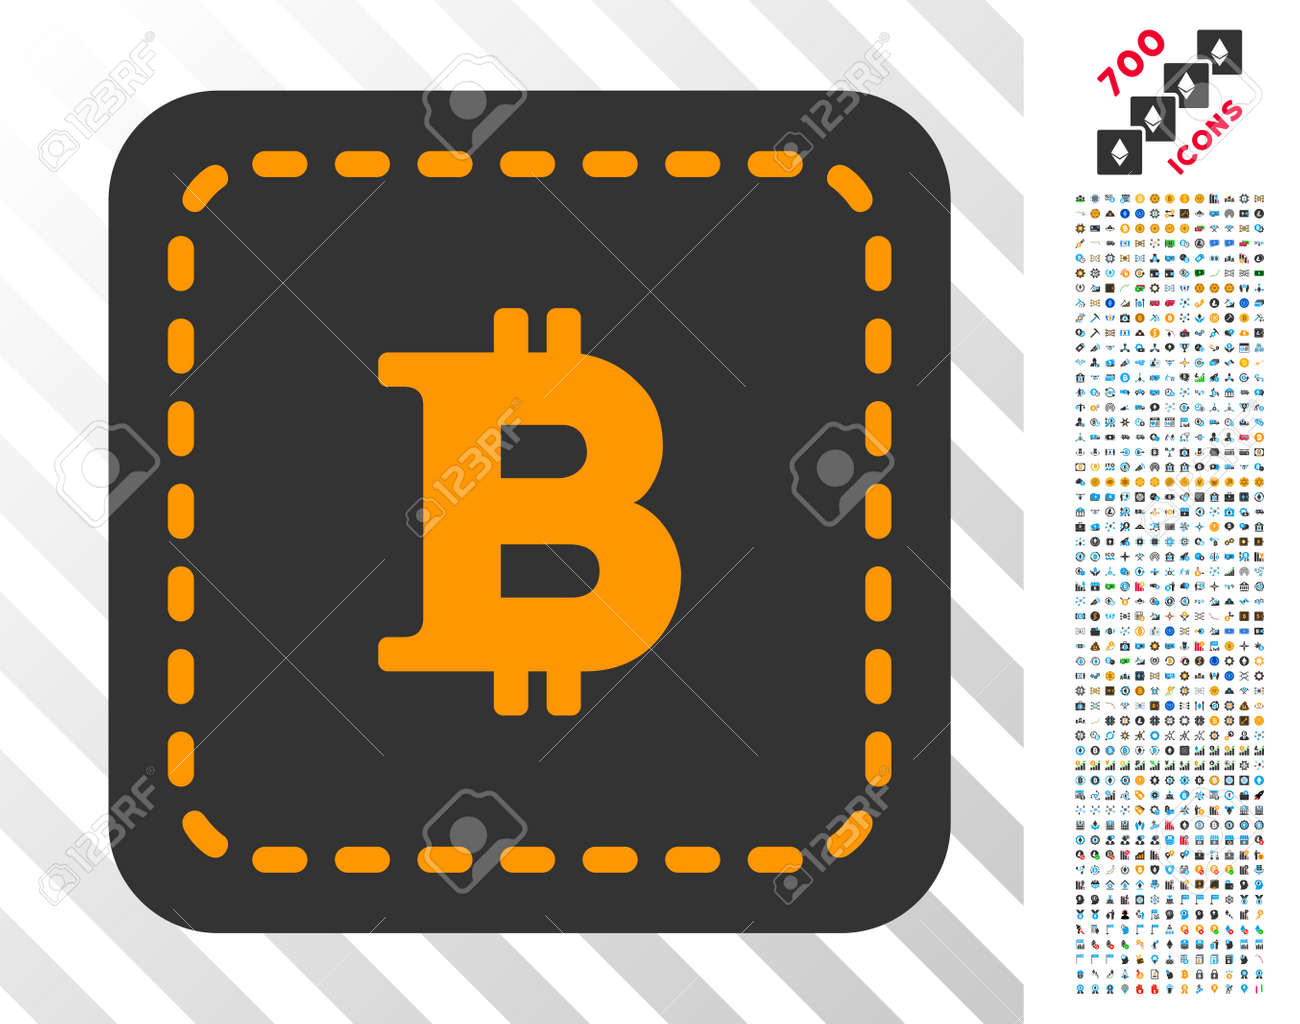 Bitcoin Wallet Icon With 7 Hundred Bonus Mining And Blockchain Pictograms Vector Illustration Style